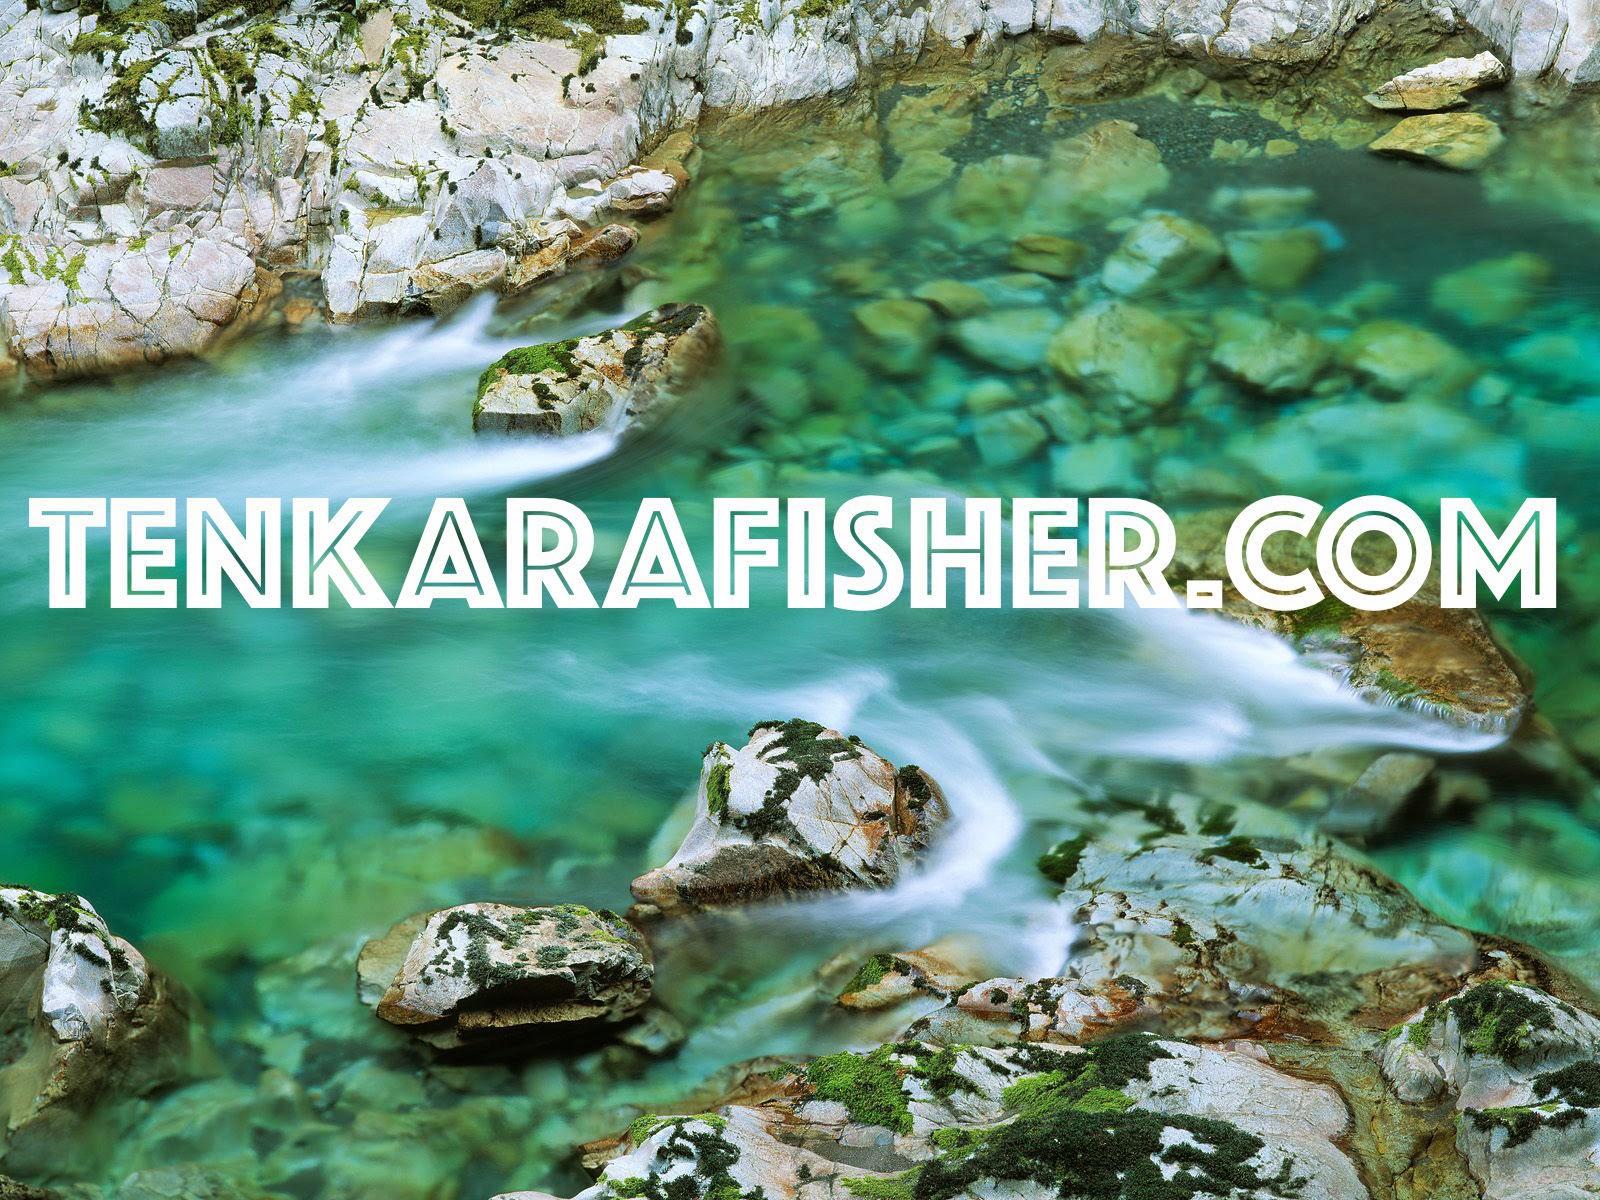 TENKARA FISHER FORUM